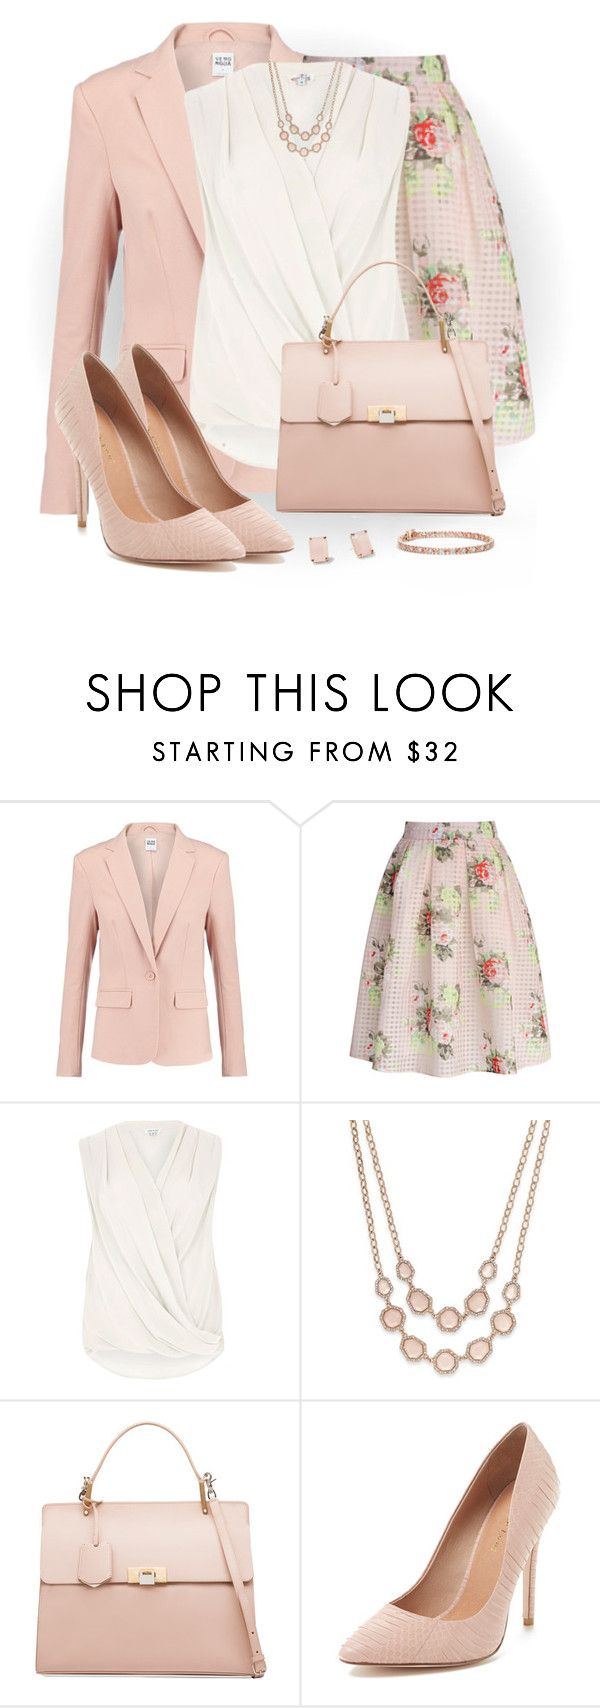 """""""Floral Check Print Skirt"""" by snickersmother ❤ liked on Polyvore featuring Vero Moda, Chicwish, River Island, Kate Spade, Charter Club, Balenciaga and Maiden Lane"""